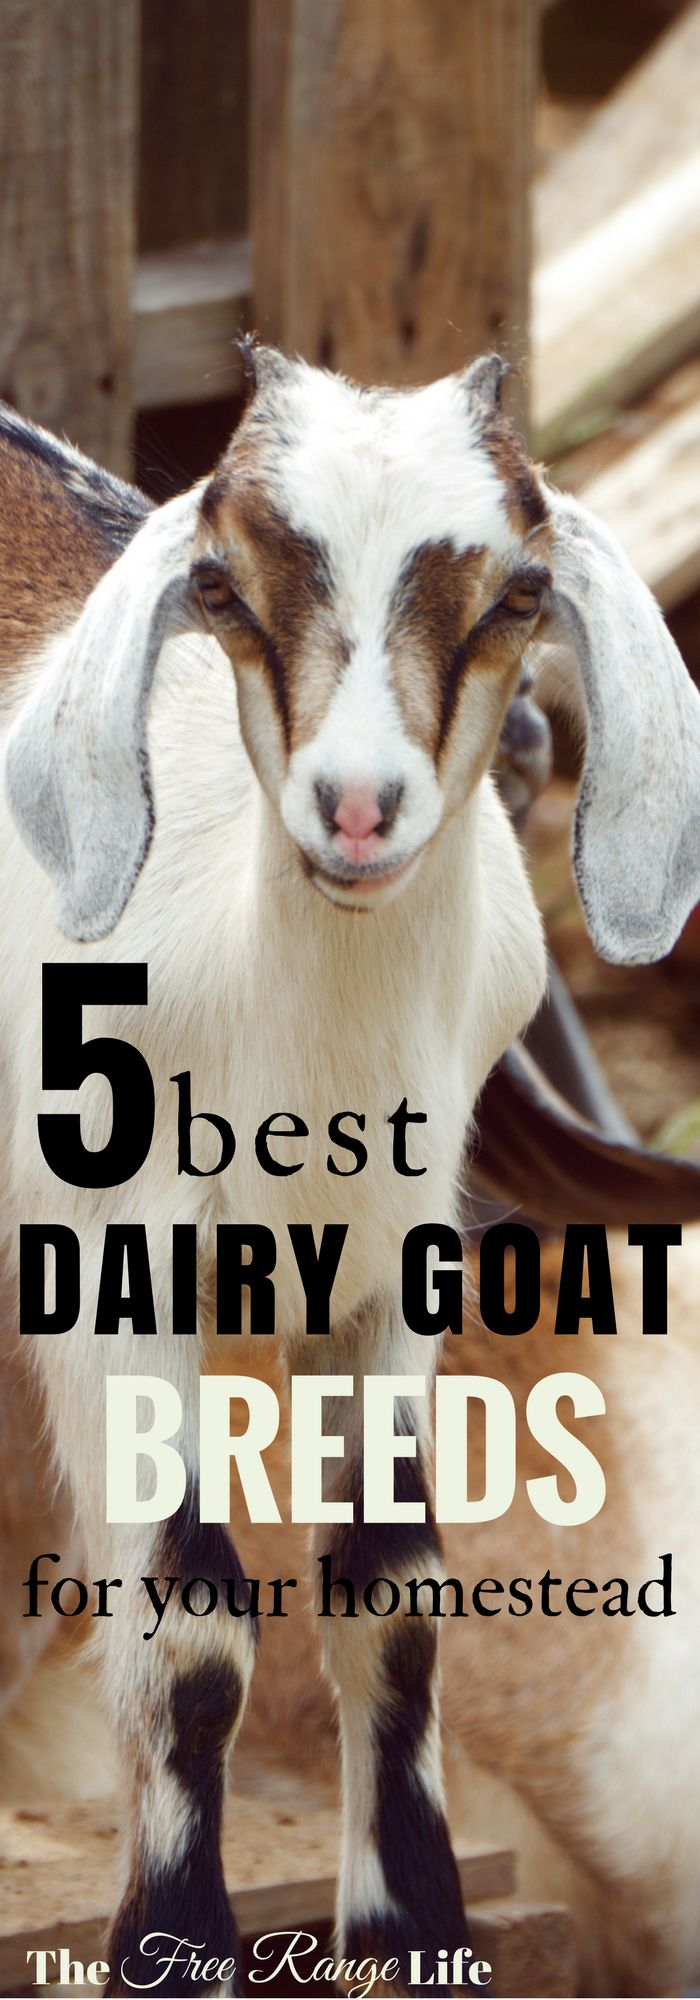 5 Best Dairy Goat Breeds for Your Homestead! Do you need a smaller goat for a smaller farm? One that gives a lot of rich milk? Find out which dairy breed is right for you!